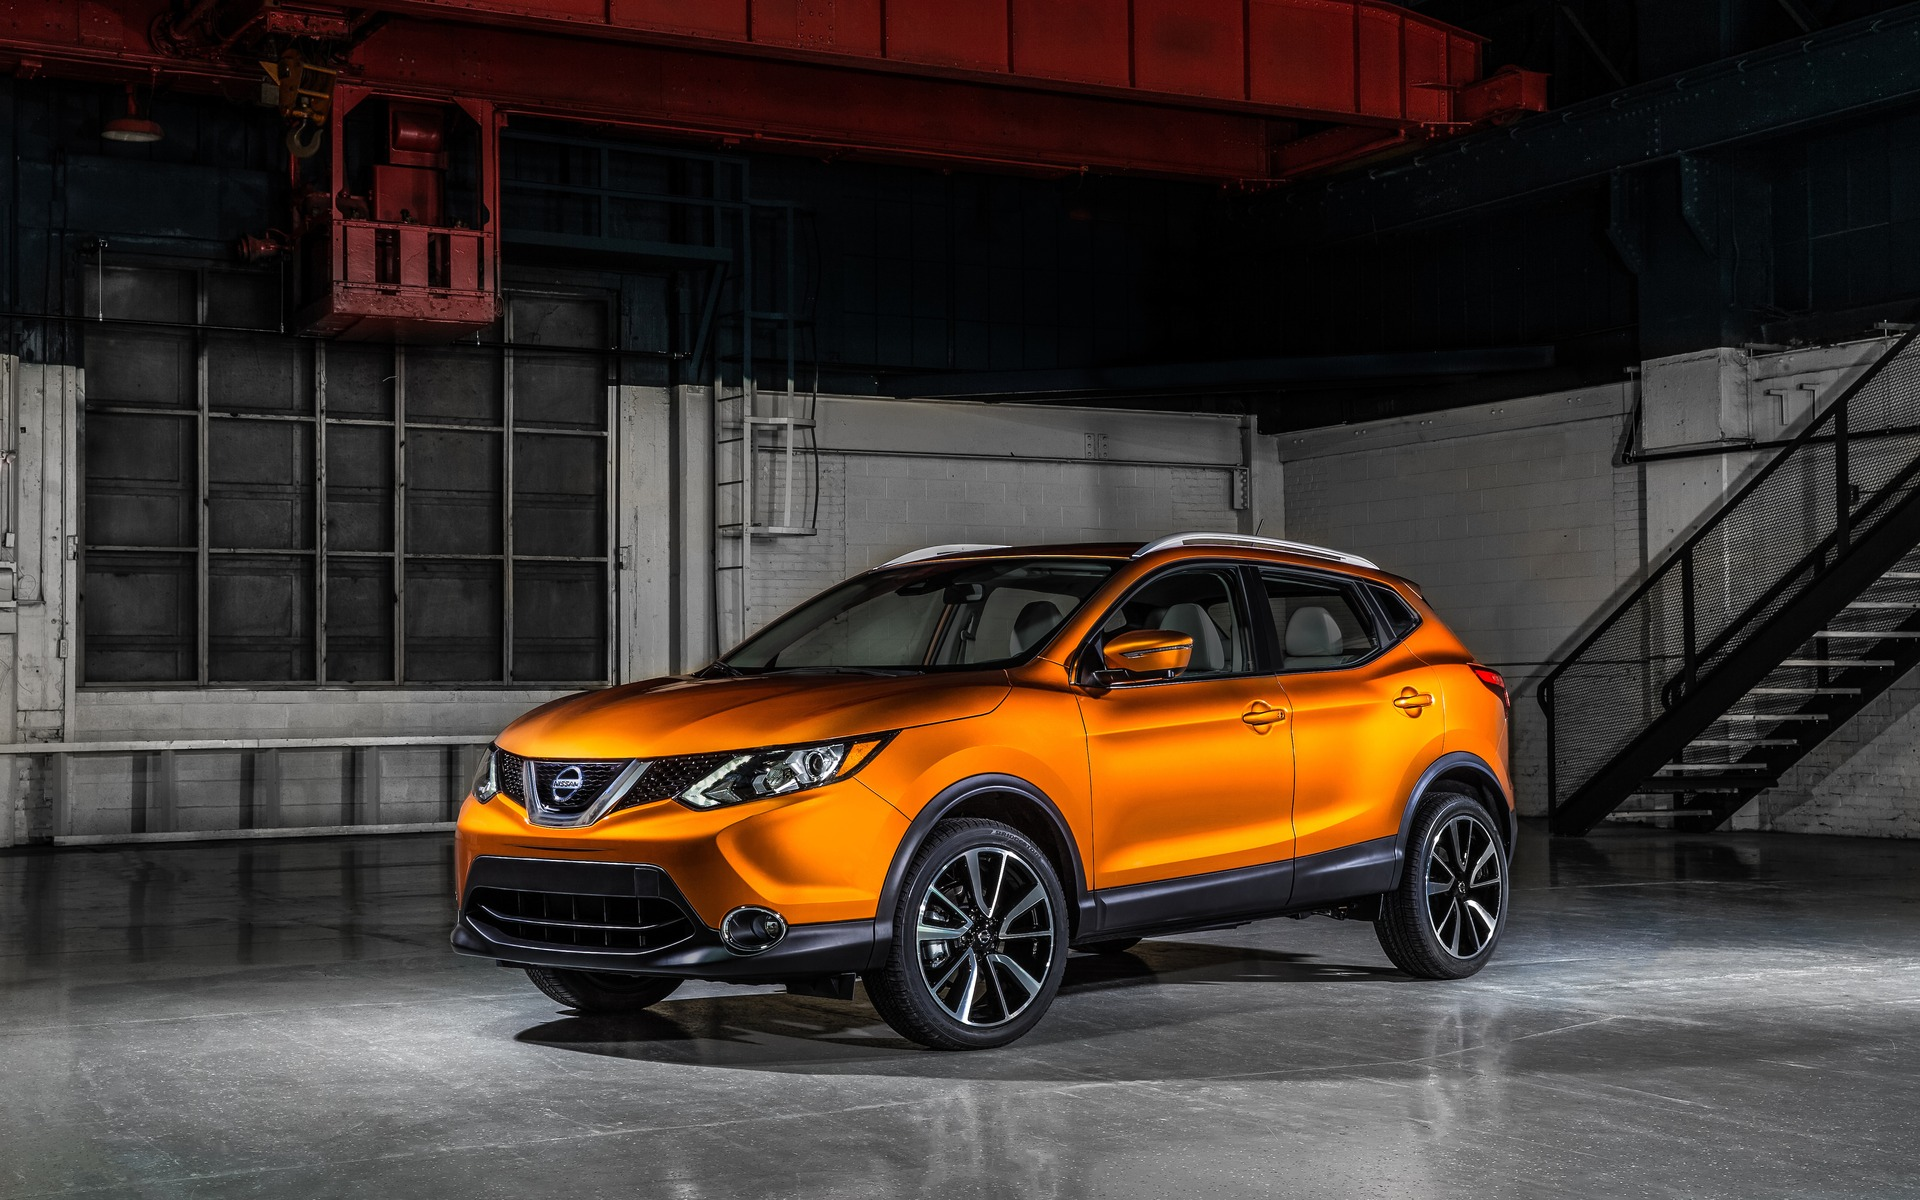 2018 Nissan Qashqai News Reviews Picture Galleries And Videos